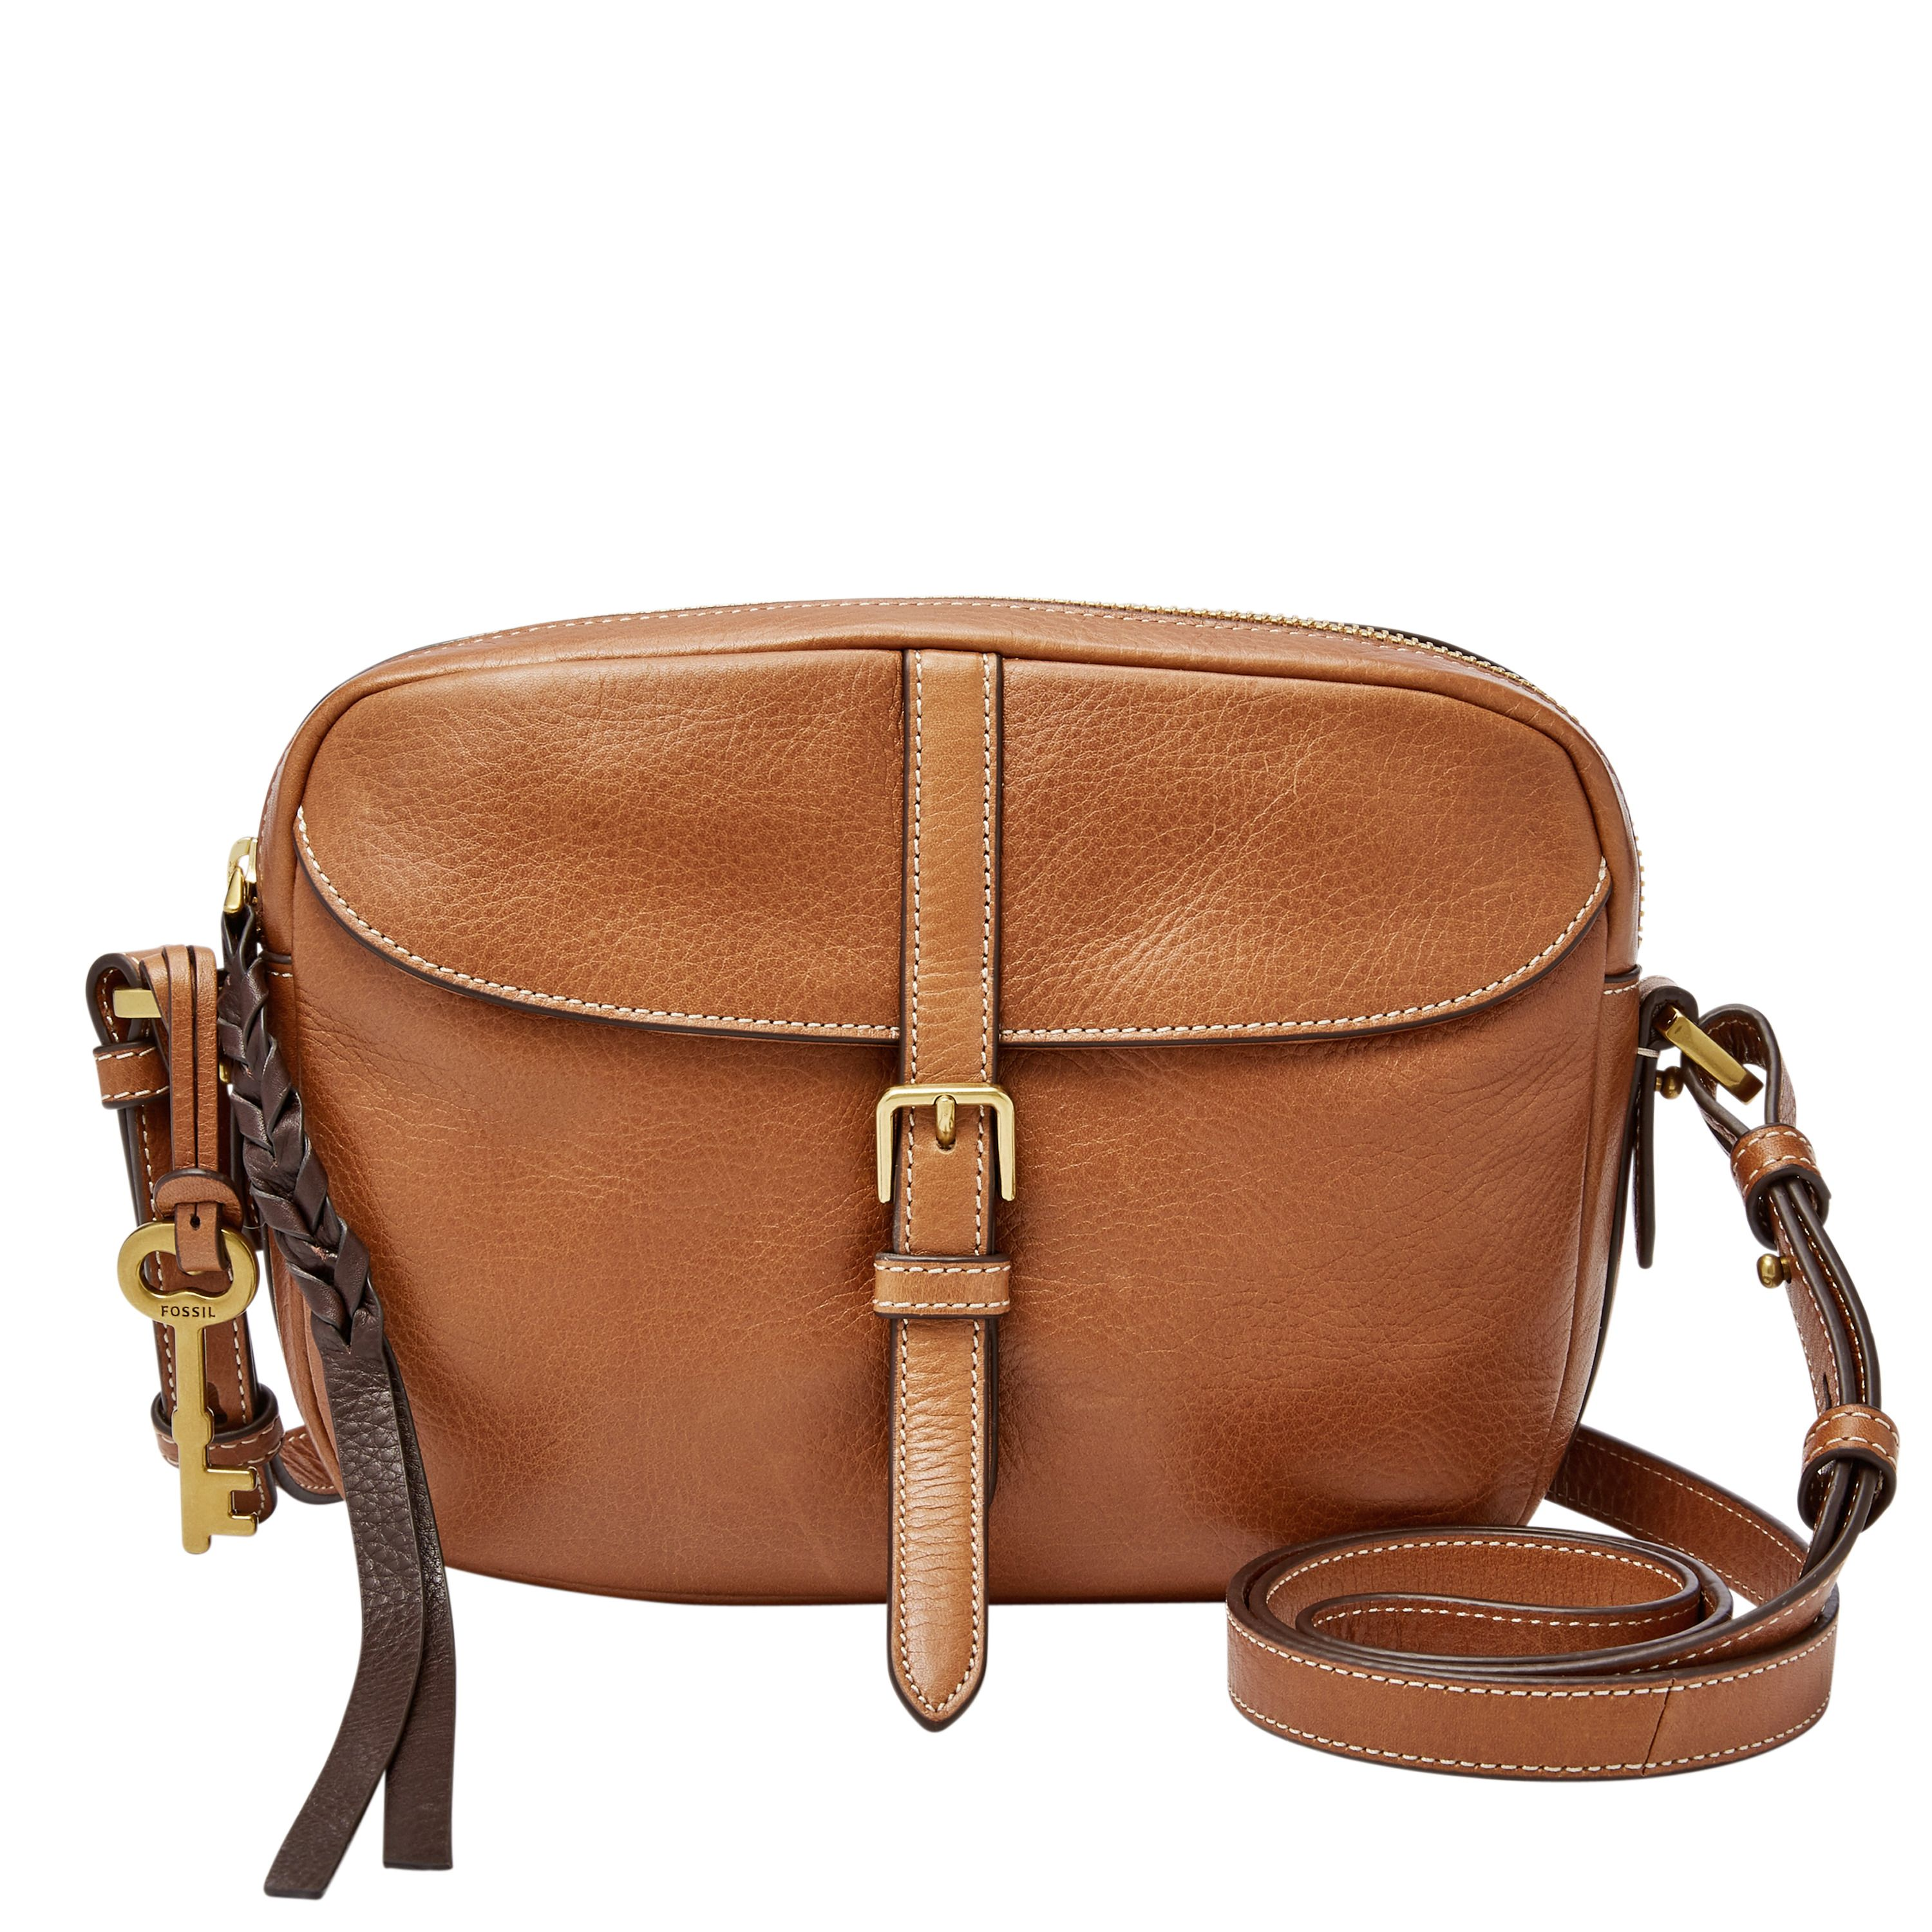 Fossil ZB7112484 Ladies Crossbody Bag Brown